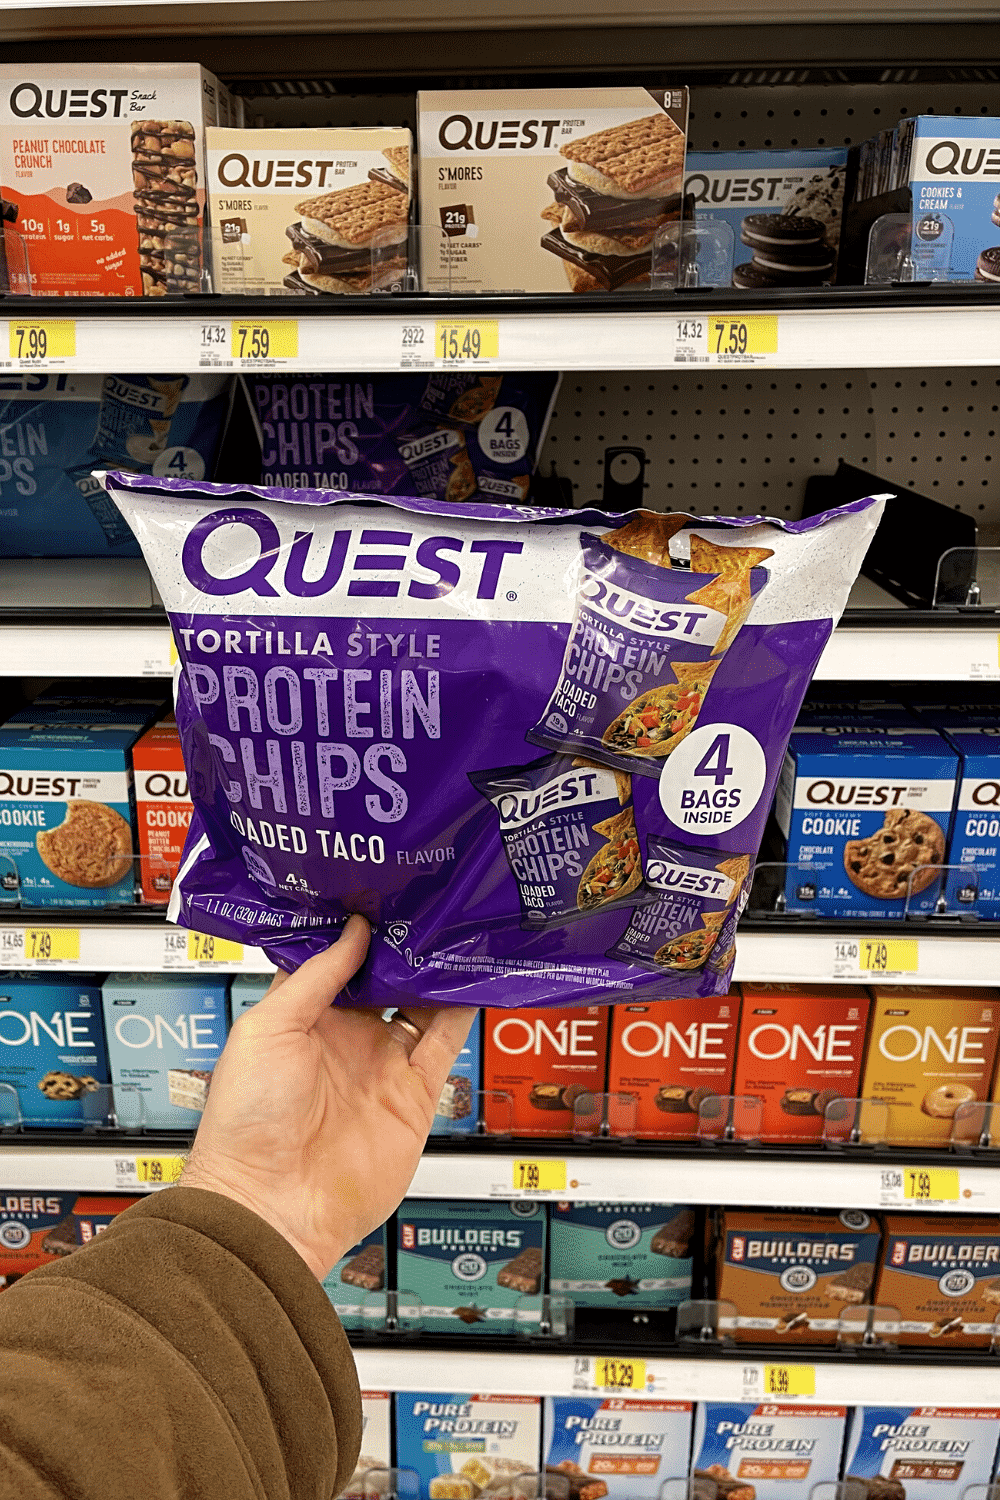 A hand holding a bag of of protein chips.